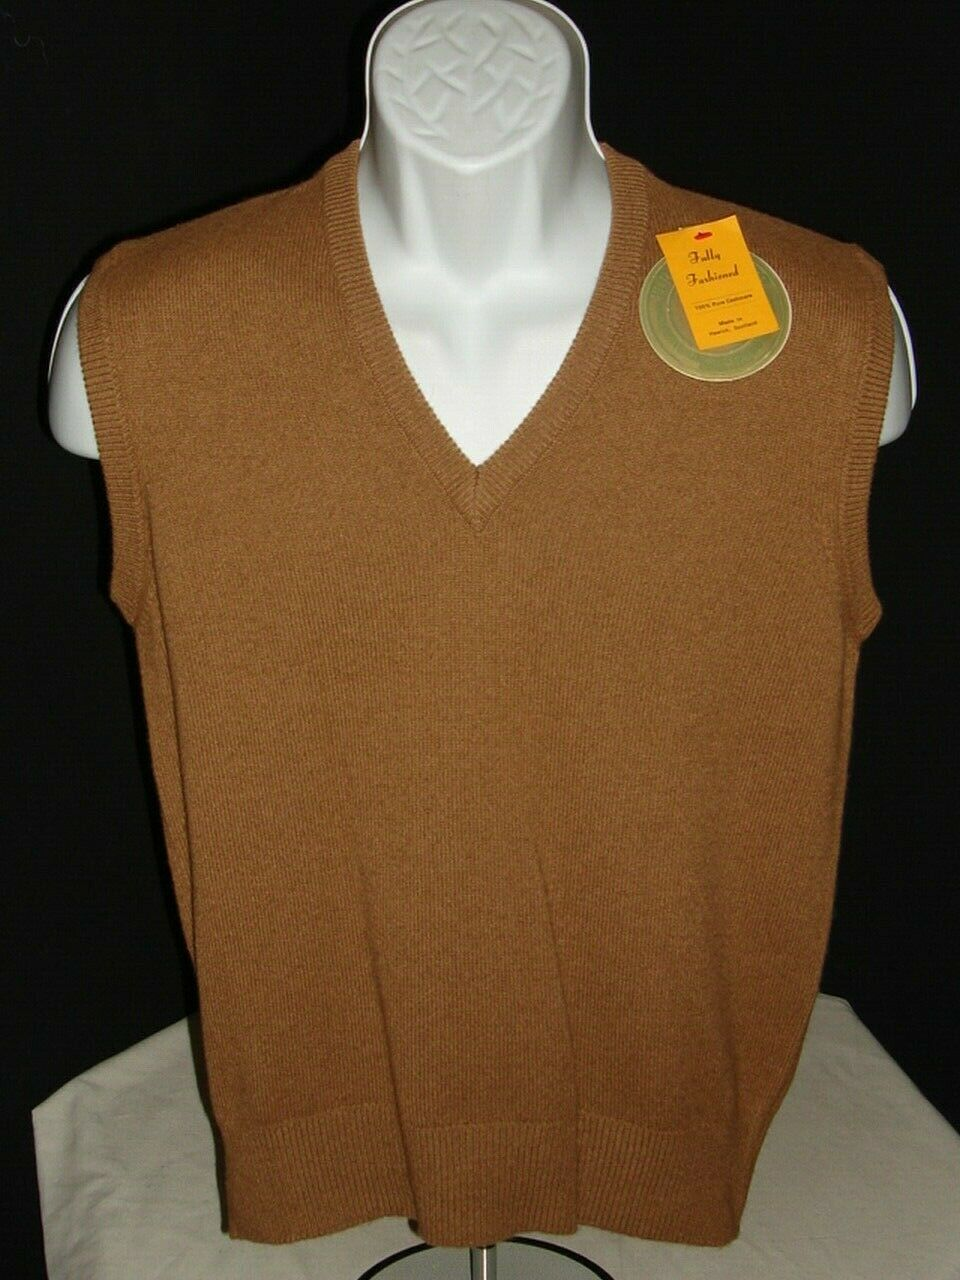 NWT MADE IN SCOTLAND SAKS FIFTH AVENUE BROWN 100% CASHMERE SWEATER VEST SZ. S